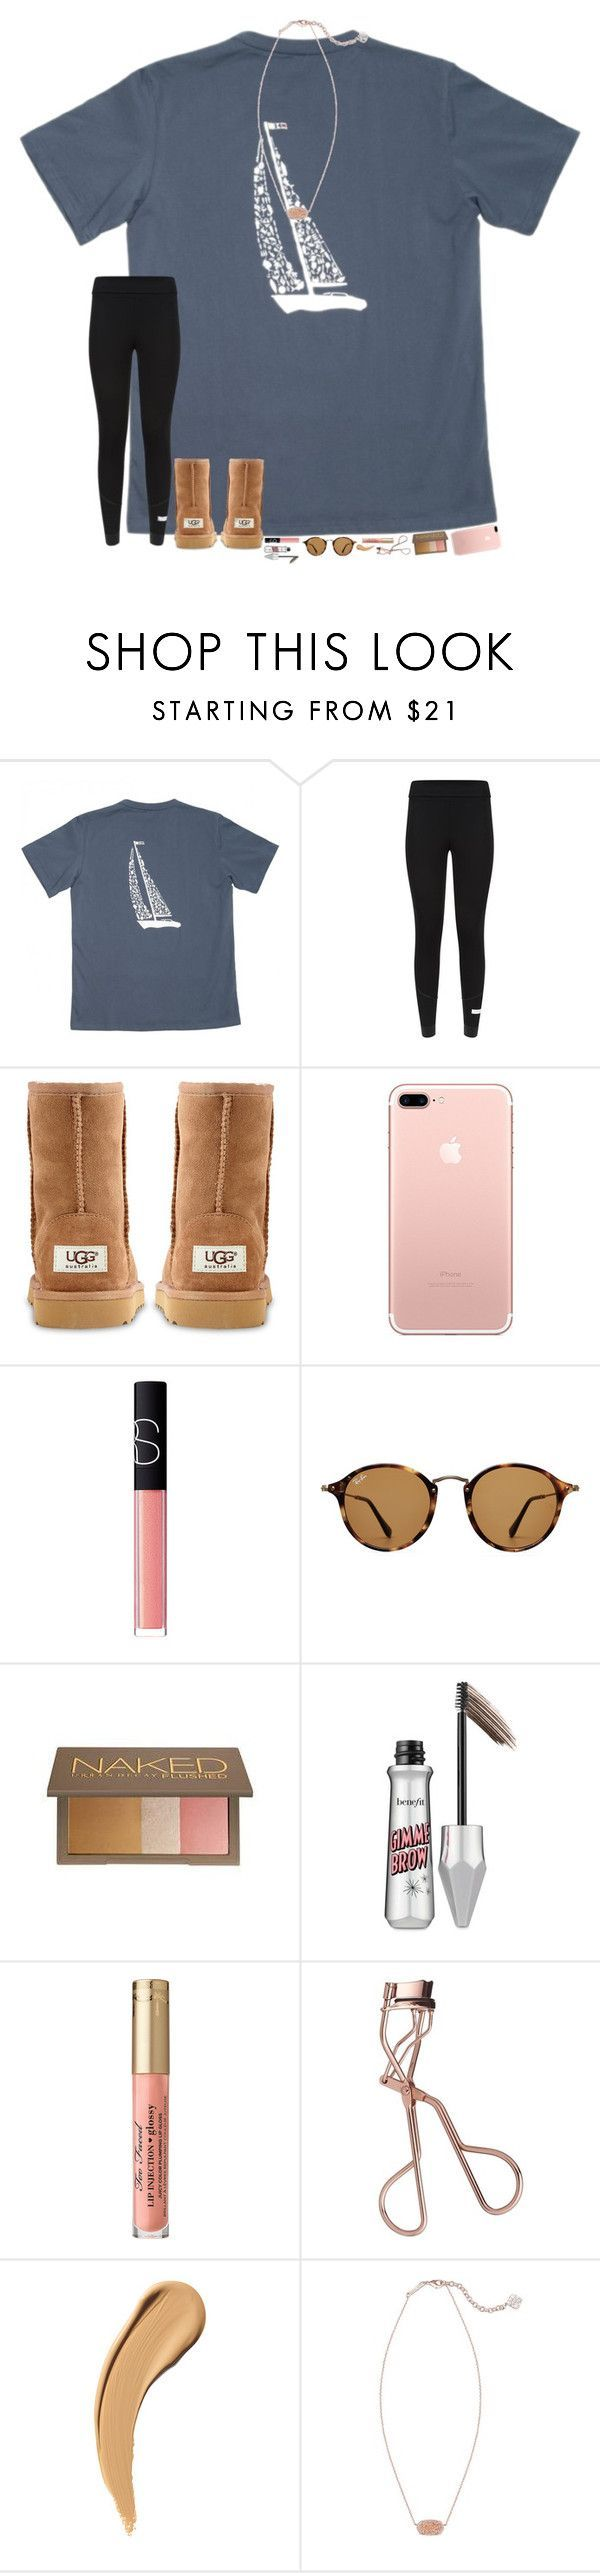 its almost time to start listening to Christmas music!! by hopemarlee ❤ liked on Polyvore featuring adidas, UGG Australia, NARS Cosmetics, Ray-Ban, Urban Decay, Benefit, Charlotte Tilbury and Kendra Scott